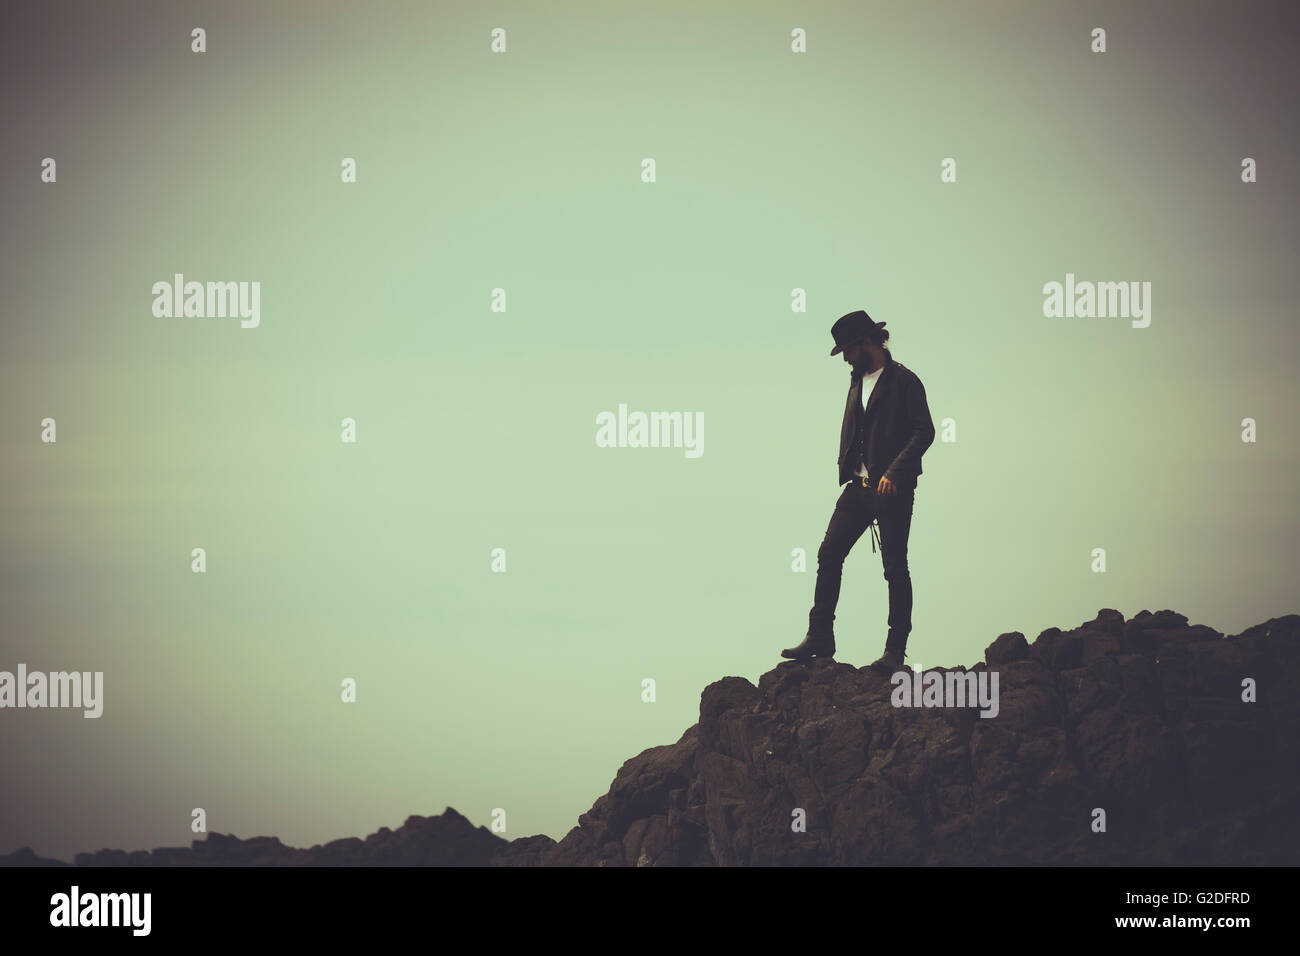 Contemplative Young Adult Man Standing on Cliff Rocks - Stock Image